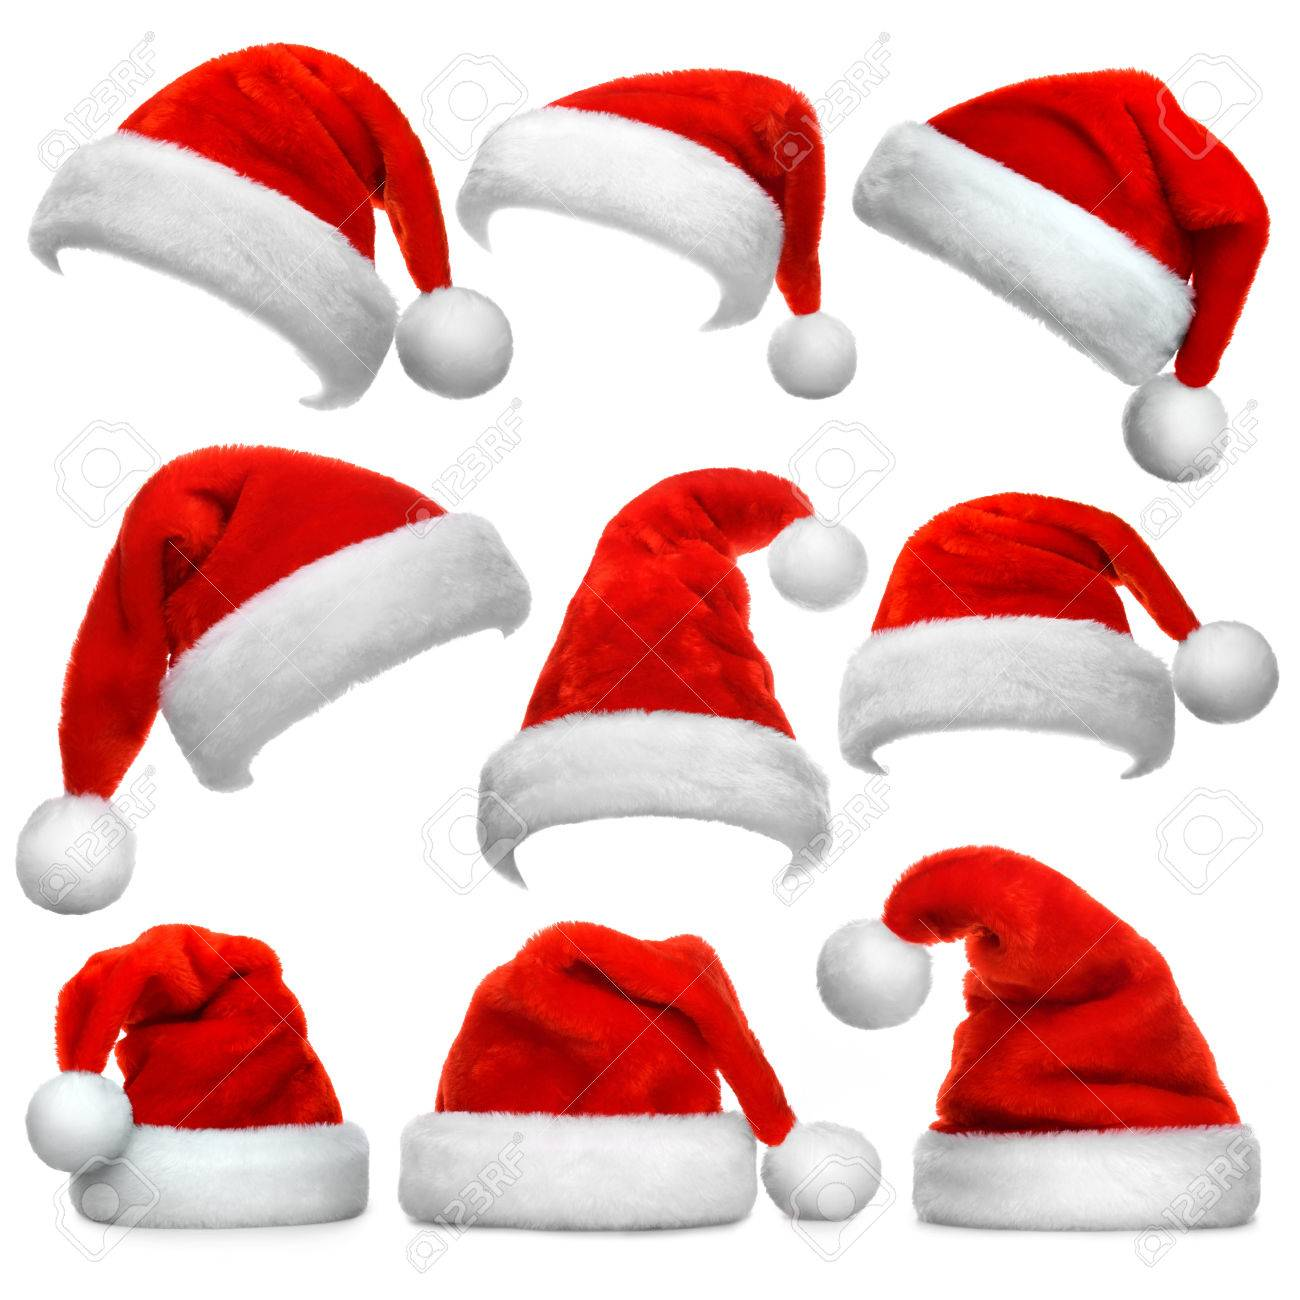 Set of red Santa Claus hats isolated on white background Stock Photo -  48930673 9b36f84cd306